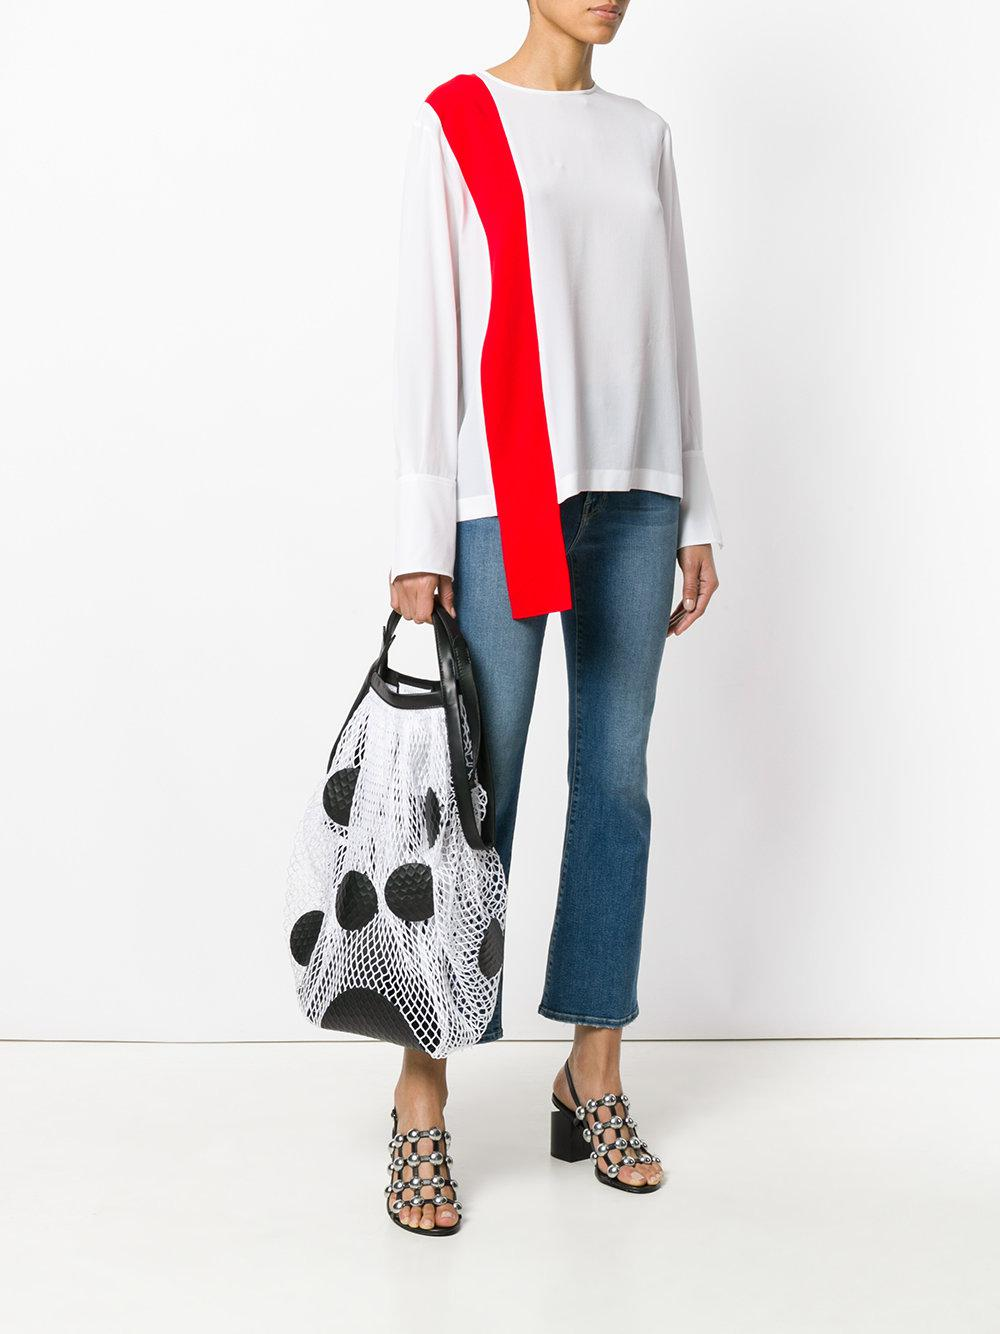 Maison Margiela Leather Polka Dotted Mesh Tote Bag in White